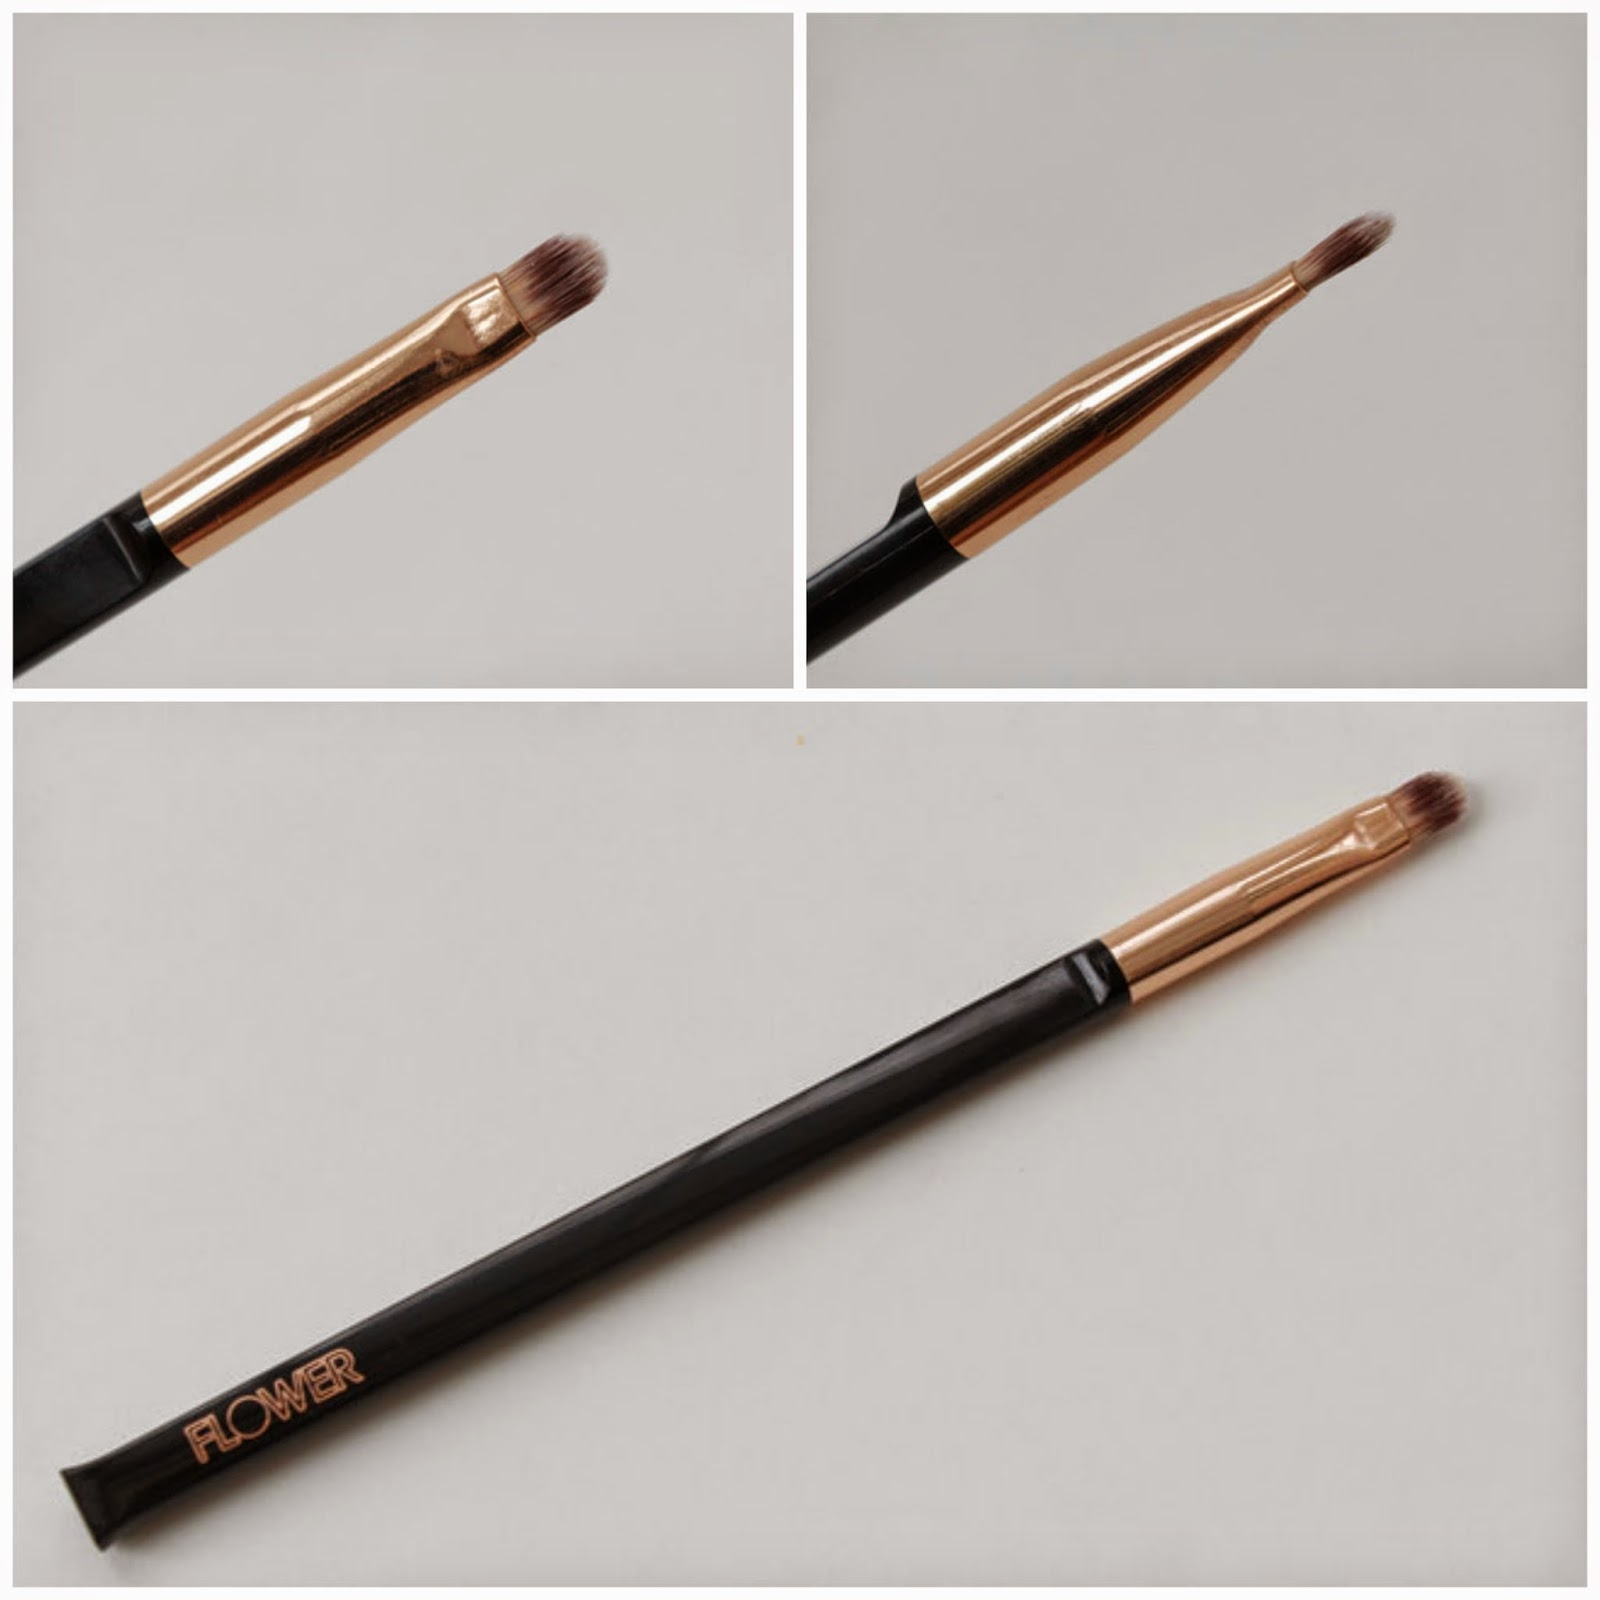 Flower beauty makeupguineapig plus i really love the shape of the handle it looks really gorgeous and its affordable as well j well done with the lip brush flower beauty izmirmasajfo